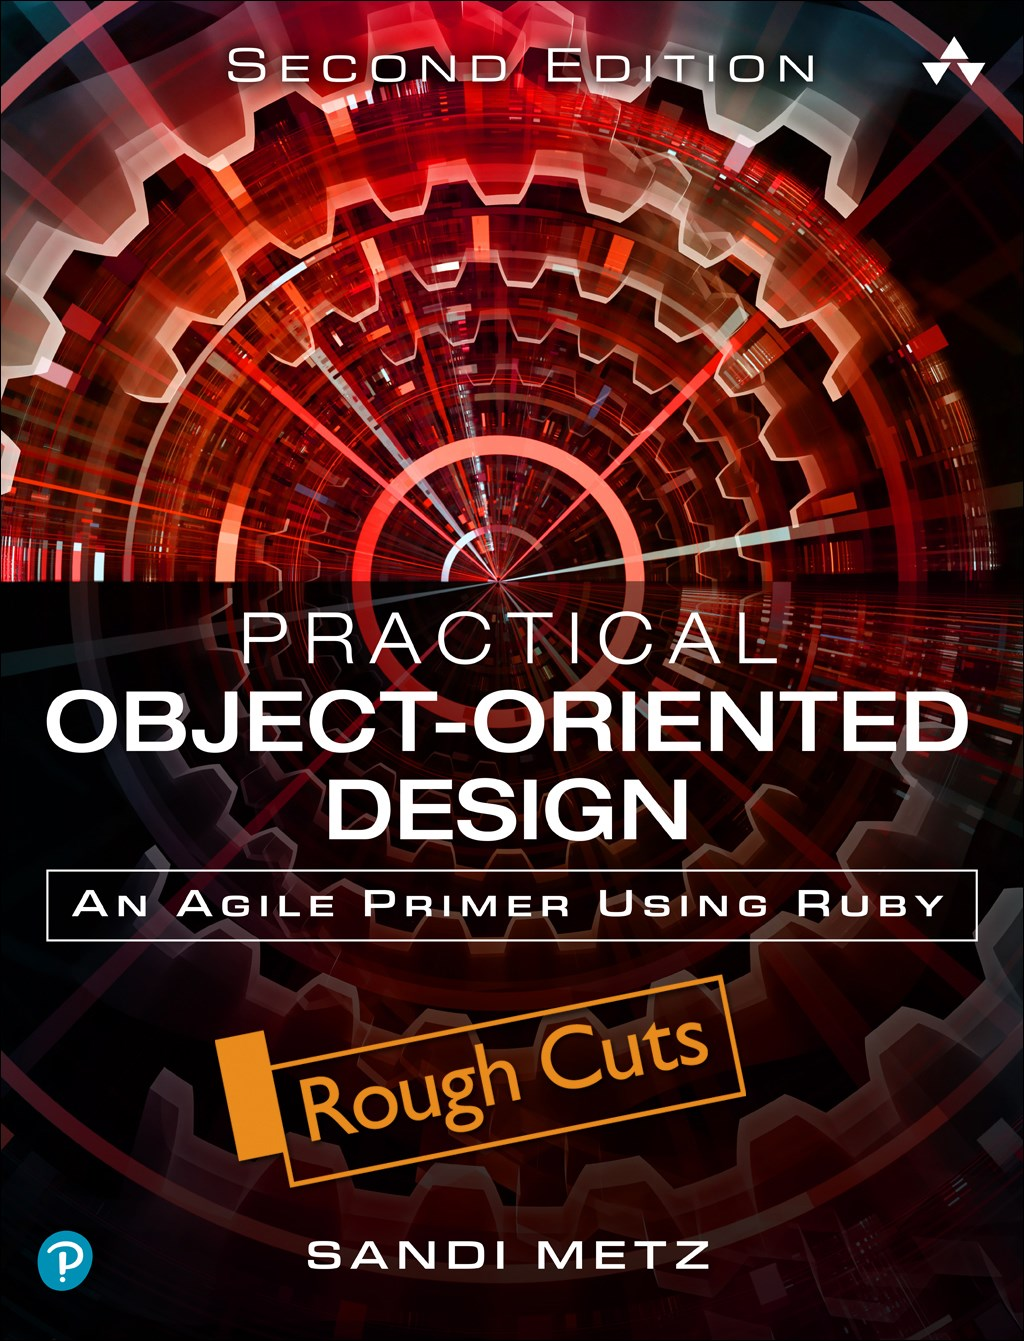 Practical Object-Oriented Design: An Agile Primer Using Ruby, Rough Cuts, 2nd Edition